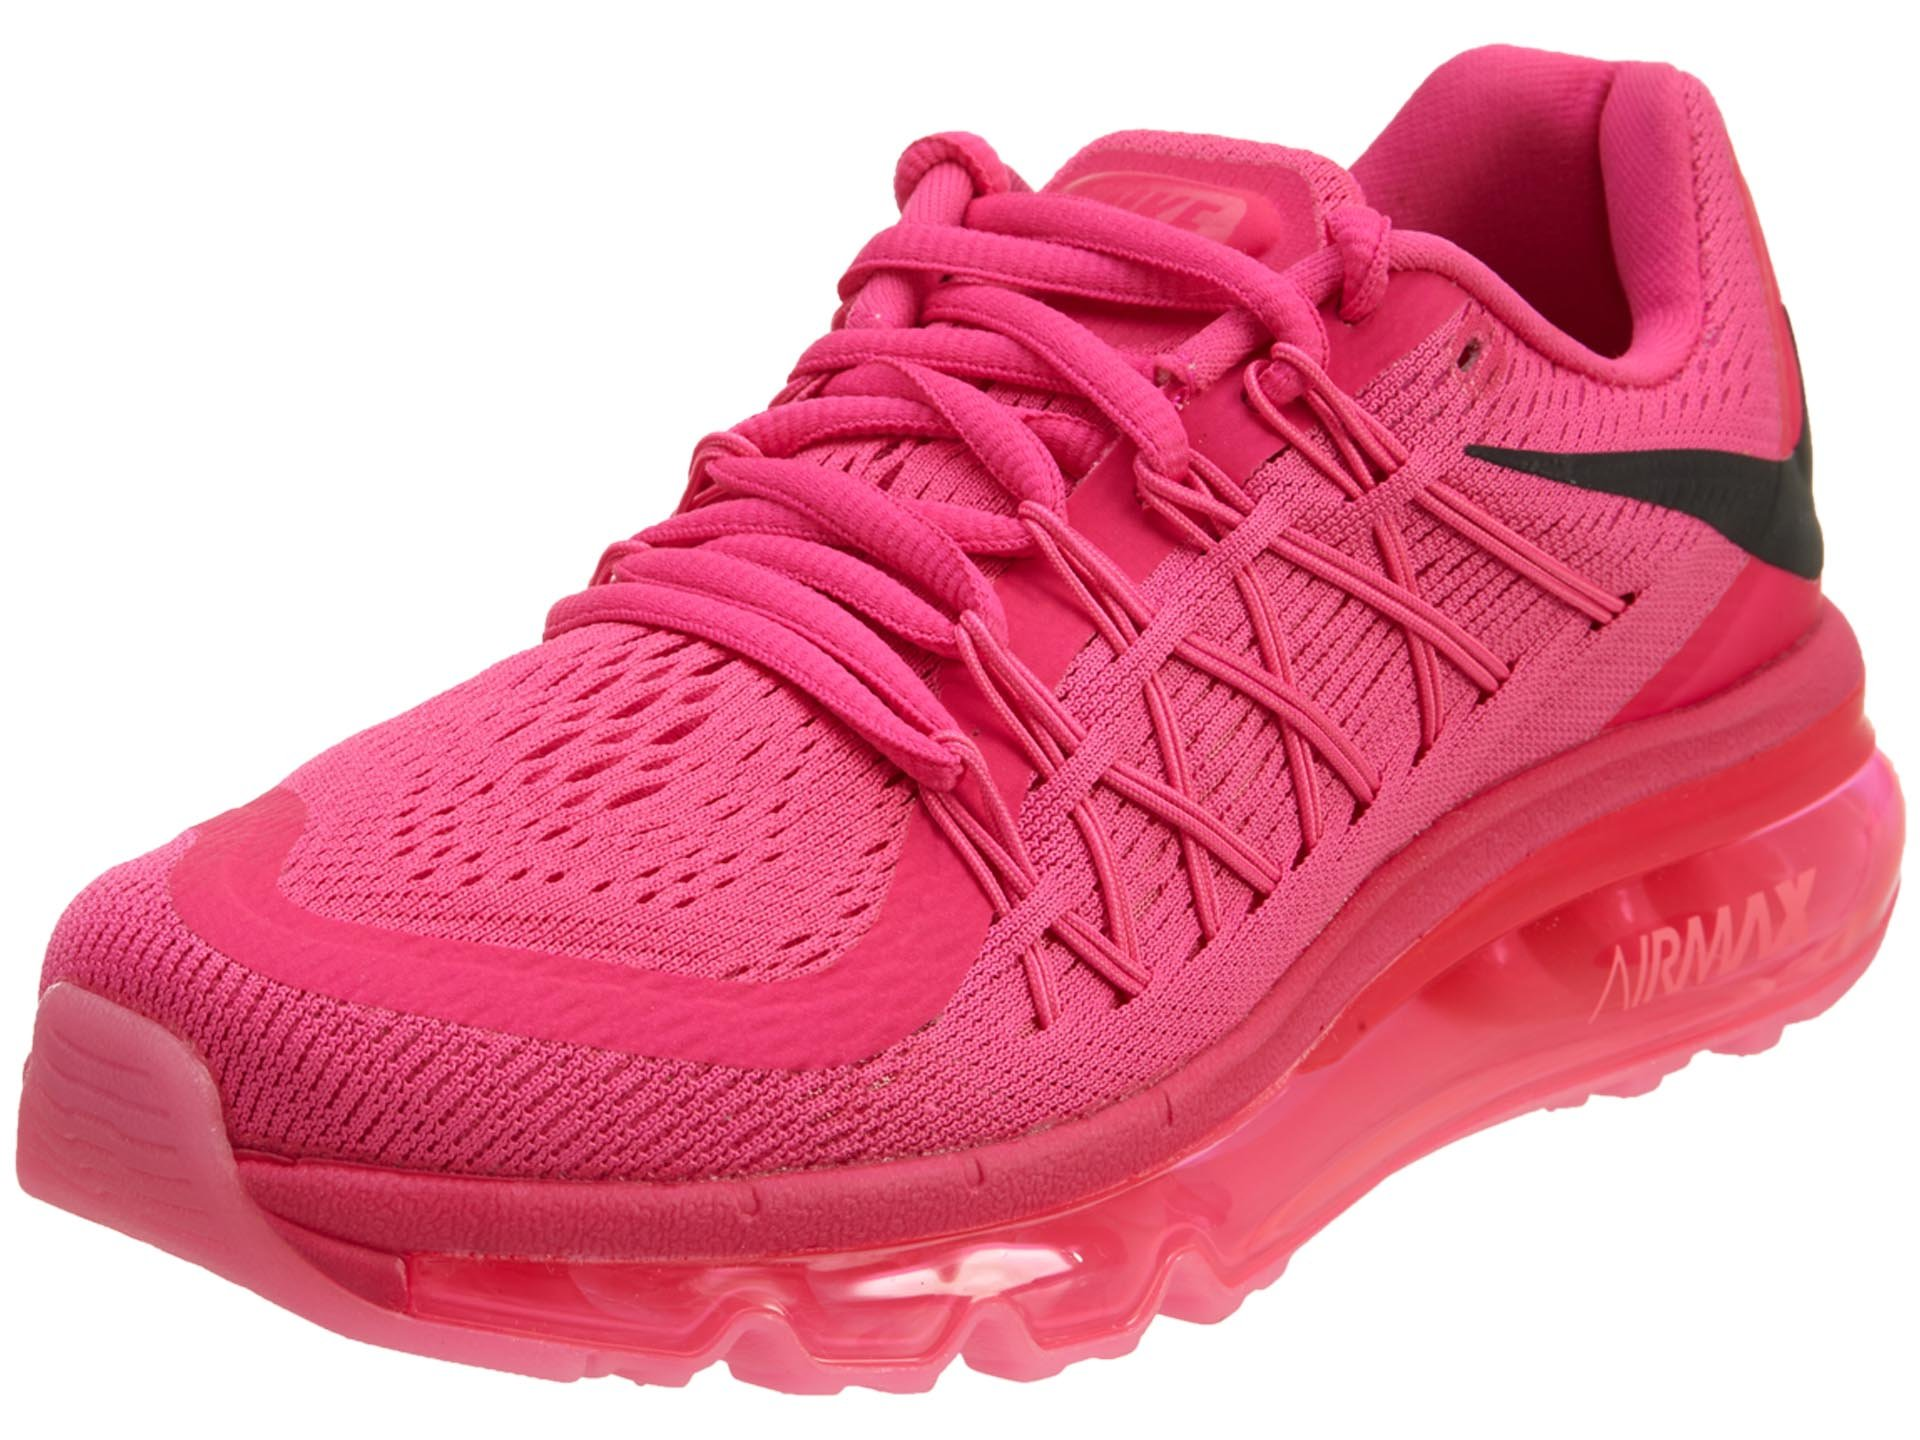 Nike Air Max 2015 Womens Style: 698903-600 Size: 5 by NIKE